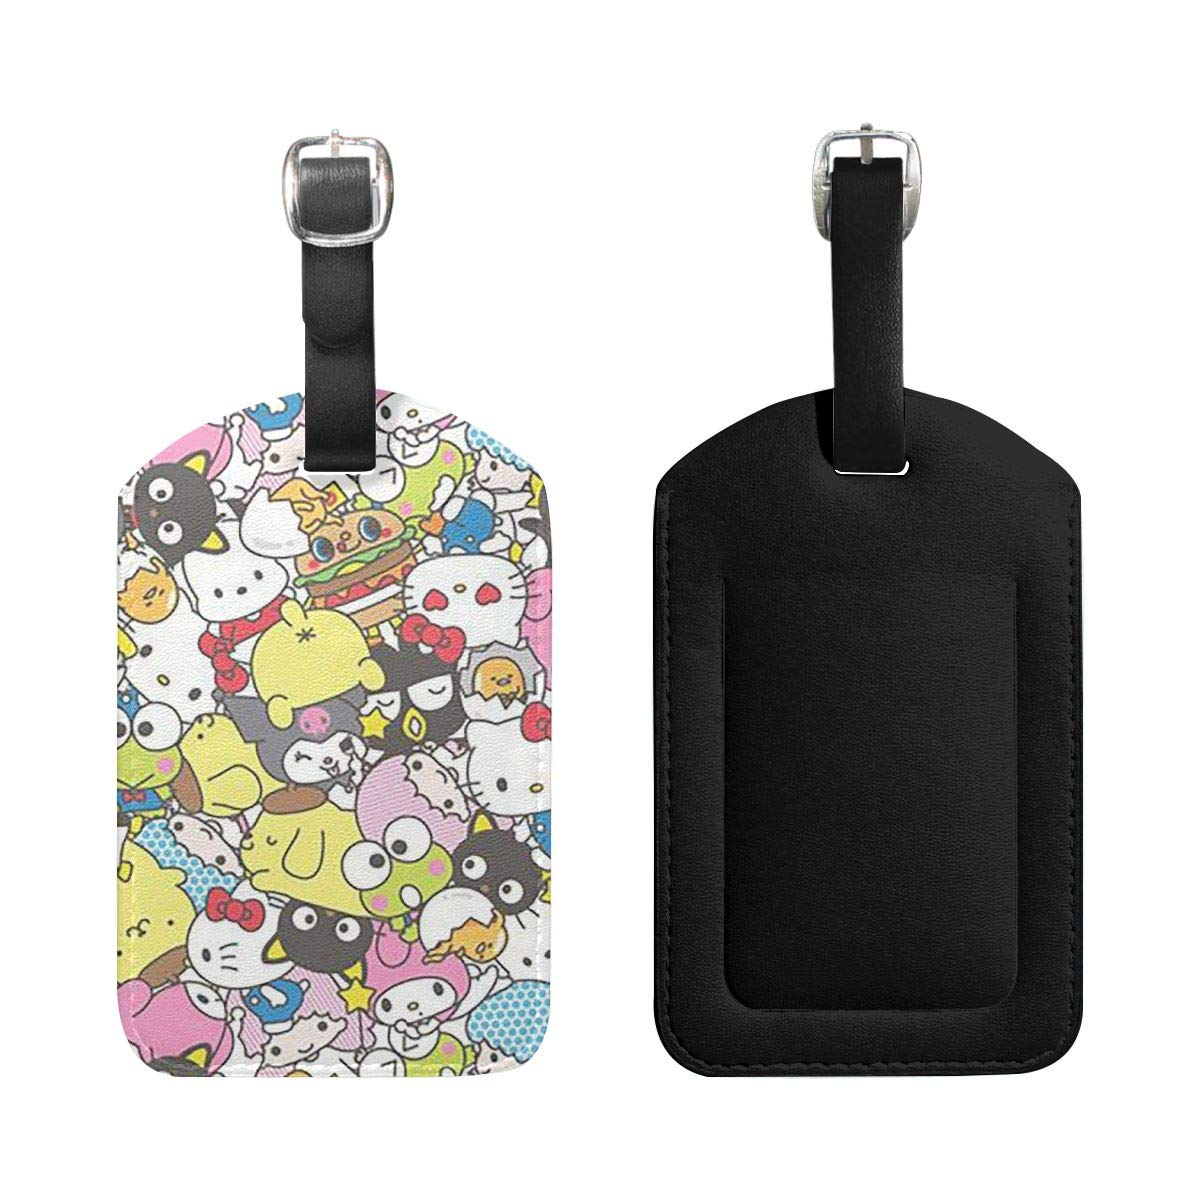 Set of 2 PU Leather Luggage Tags Hello Kitty Suitcase Labels Bag Adjustable Leather Strap Travel Accessories